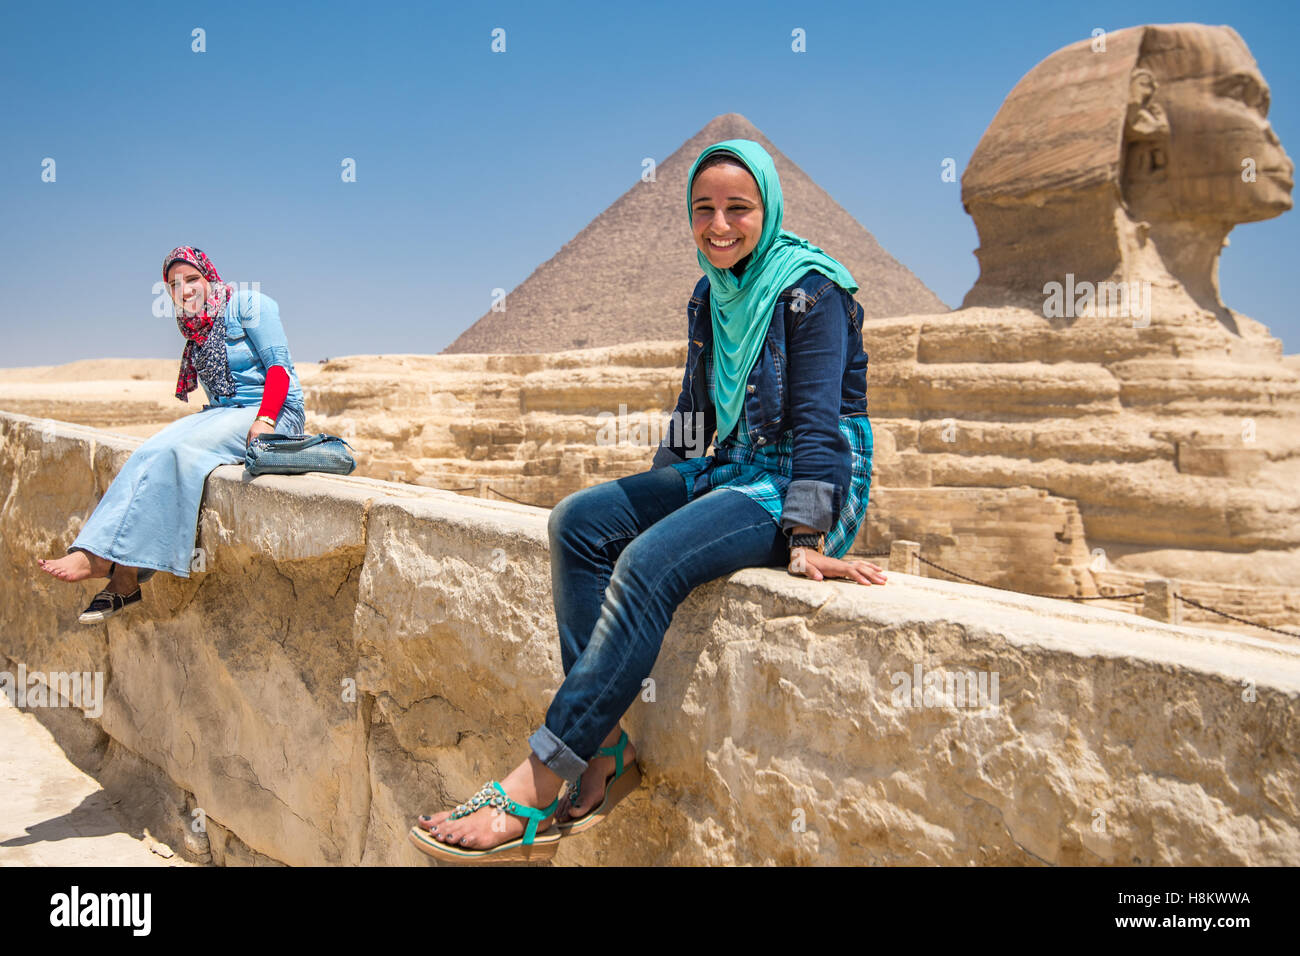 Cairo, Egypt two Egyptian women sit in front of the Great Sphinx of Giza with the Great Pyramids of Giza in the - Stock Image